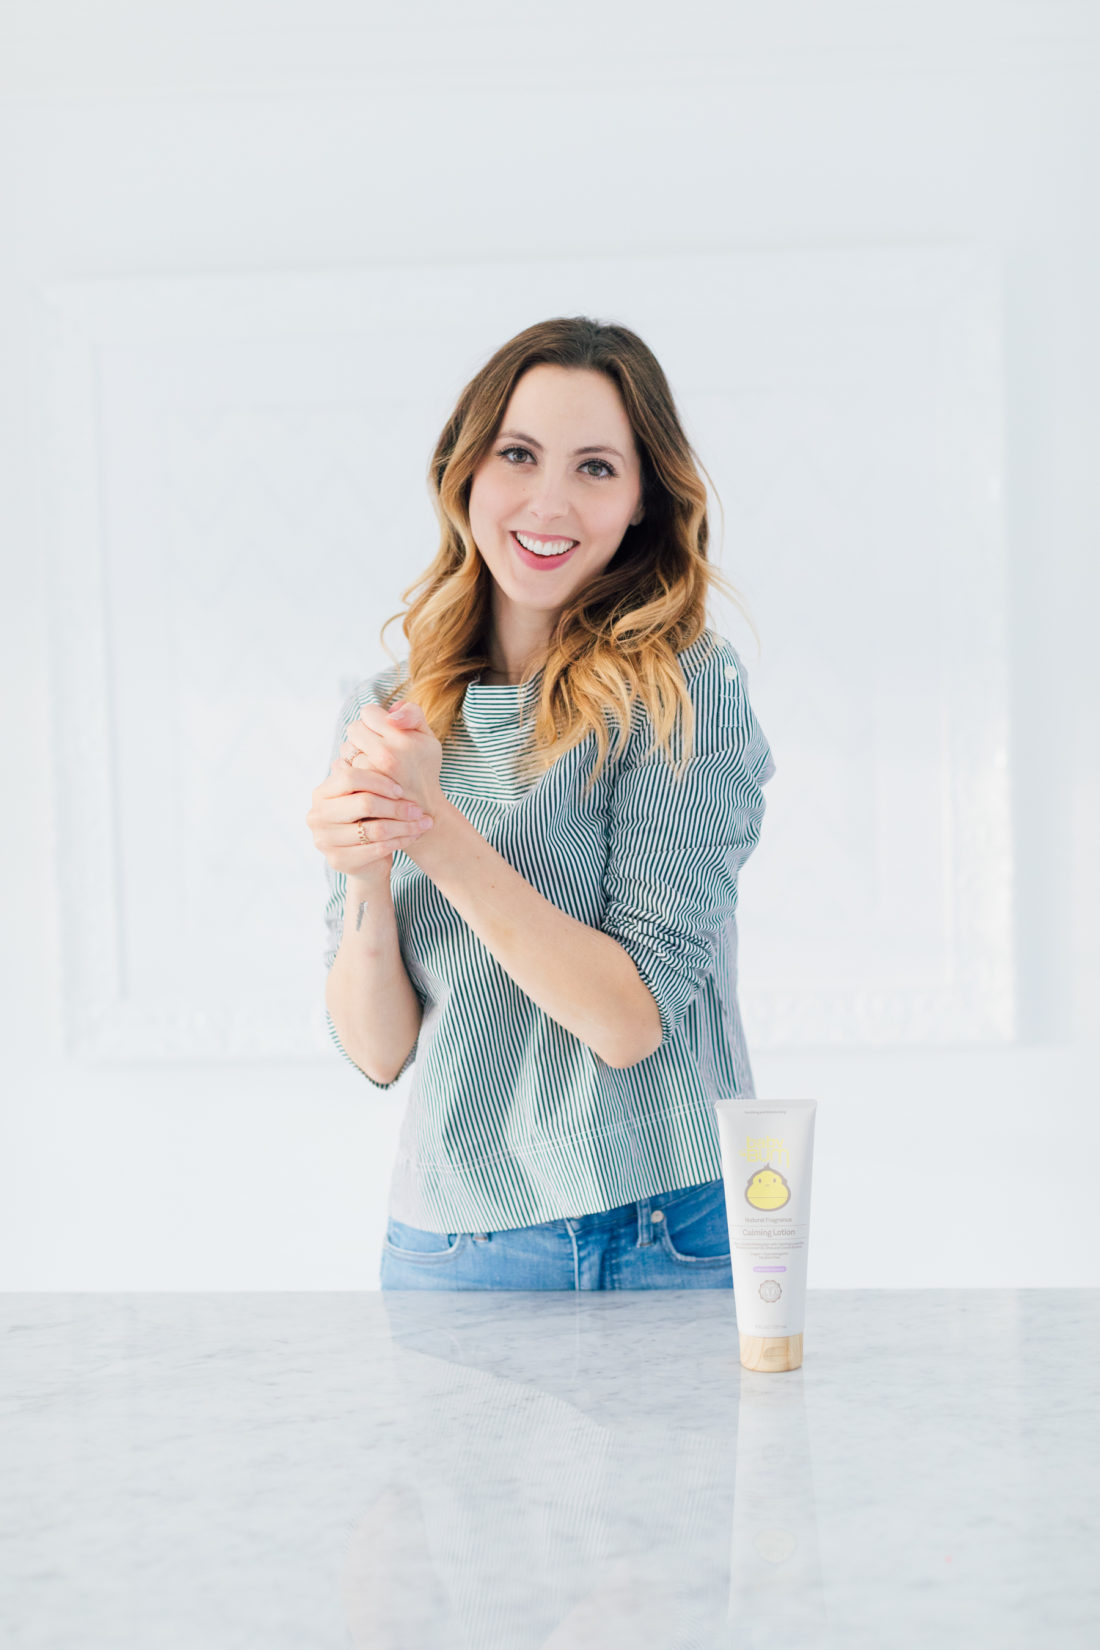 Eva Amurri Martino wears a striped boatneck top, and uses baby bum calming lotion to moisturize her hands and arms